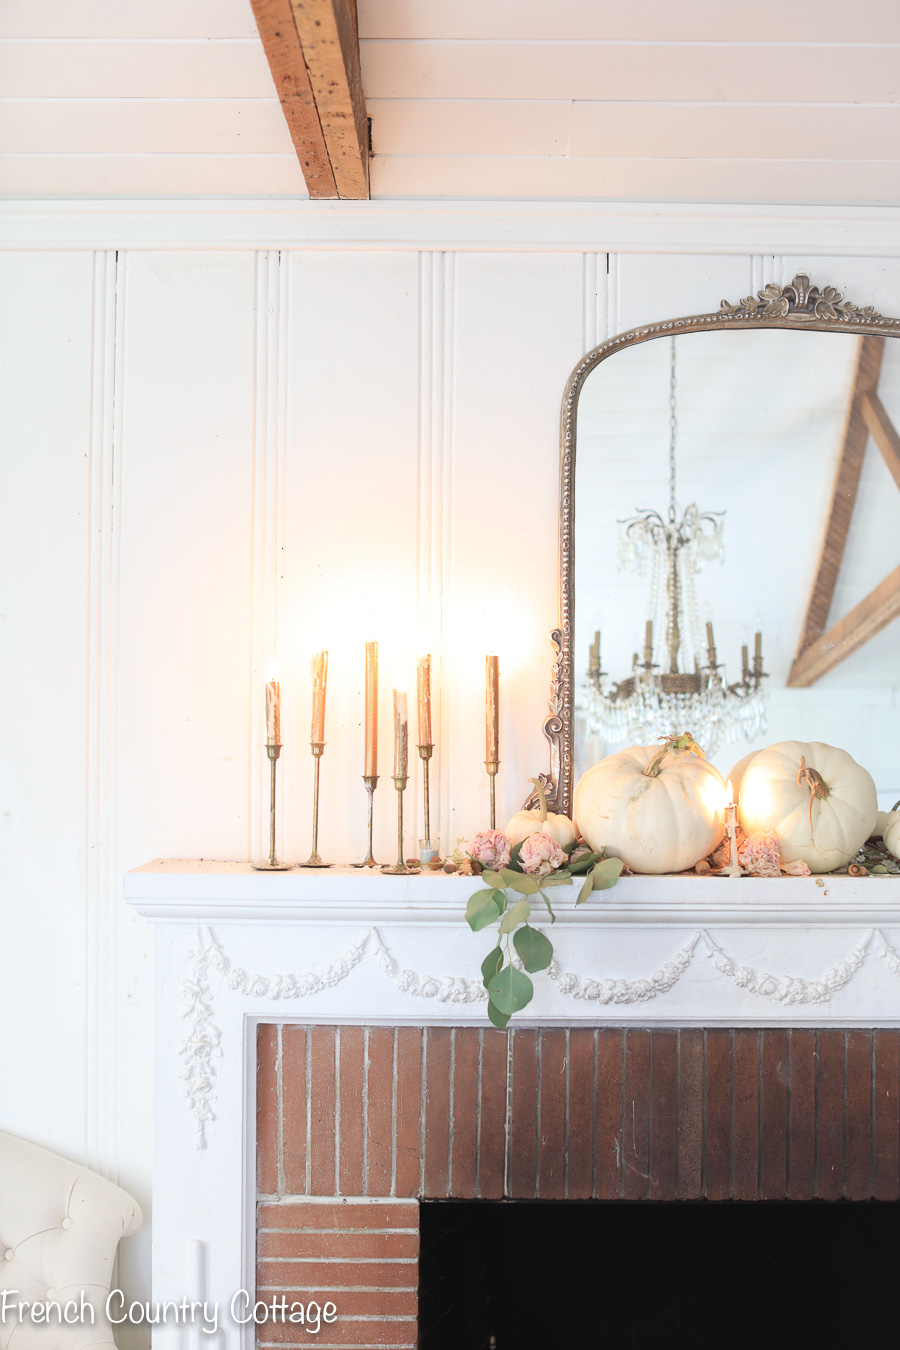 French Country Fireplace Just 3 Things For A Romantic Autumn Fireplace Mantel Styling